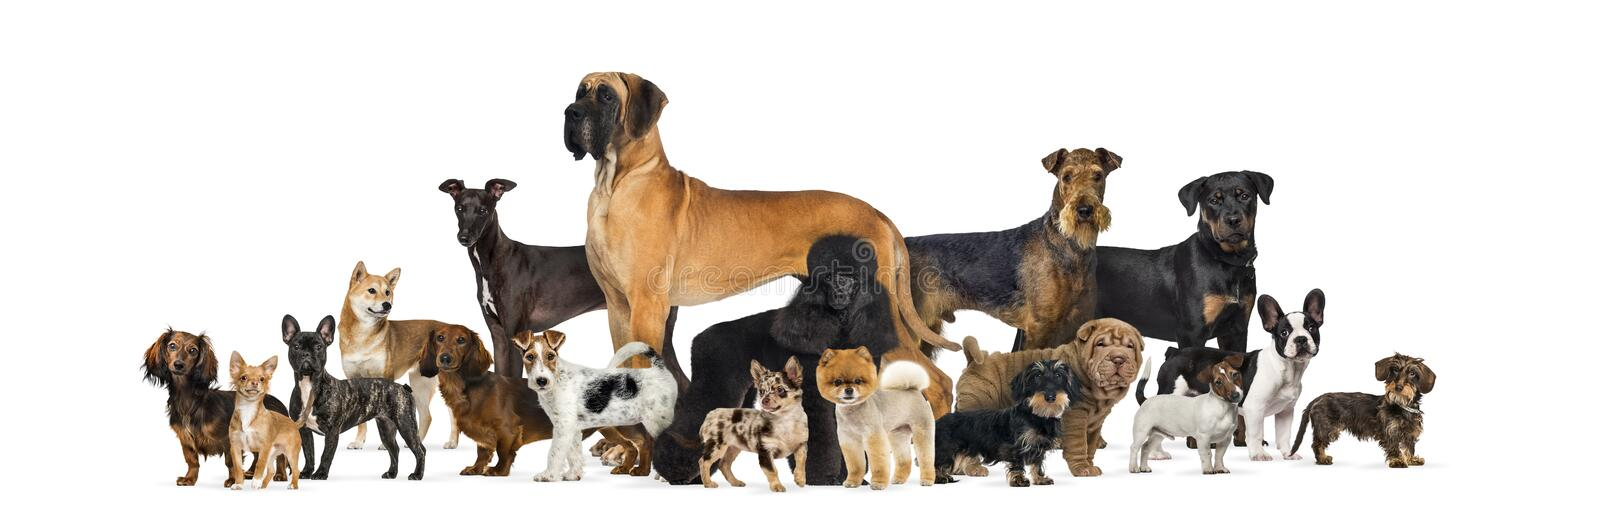 Large group of purebred dogs in studio against white background. Large group of purebred dogs in studio, white background stock image